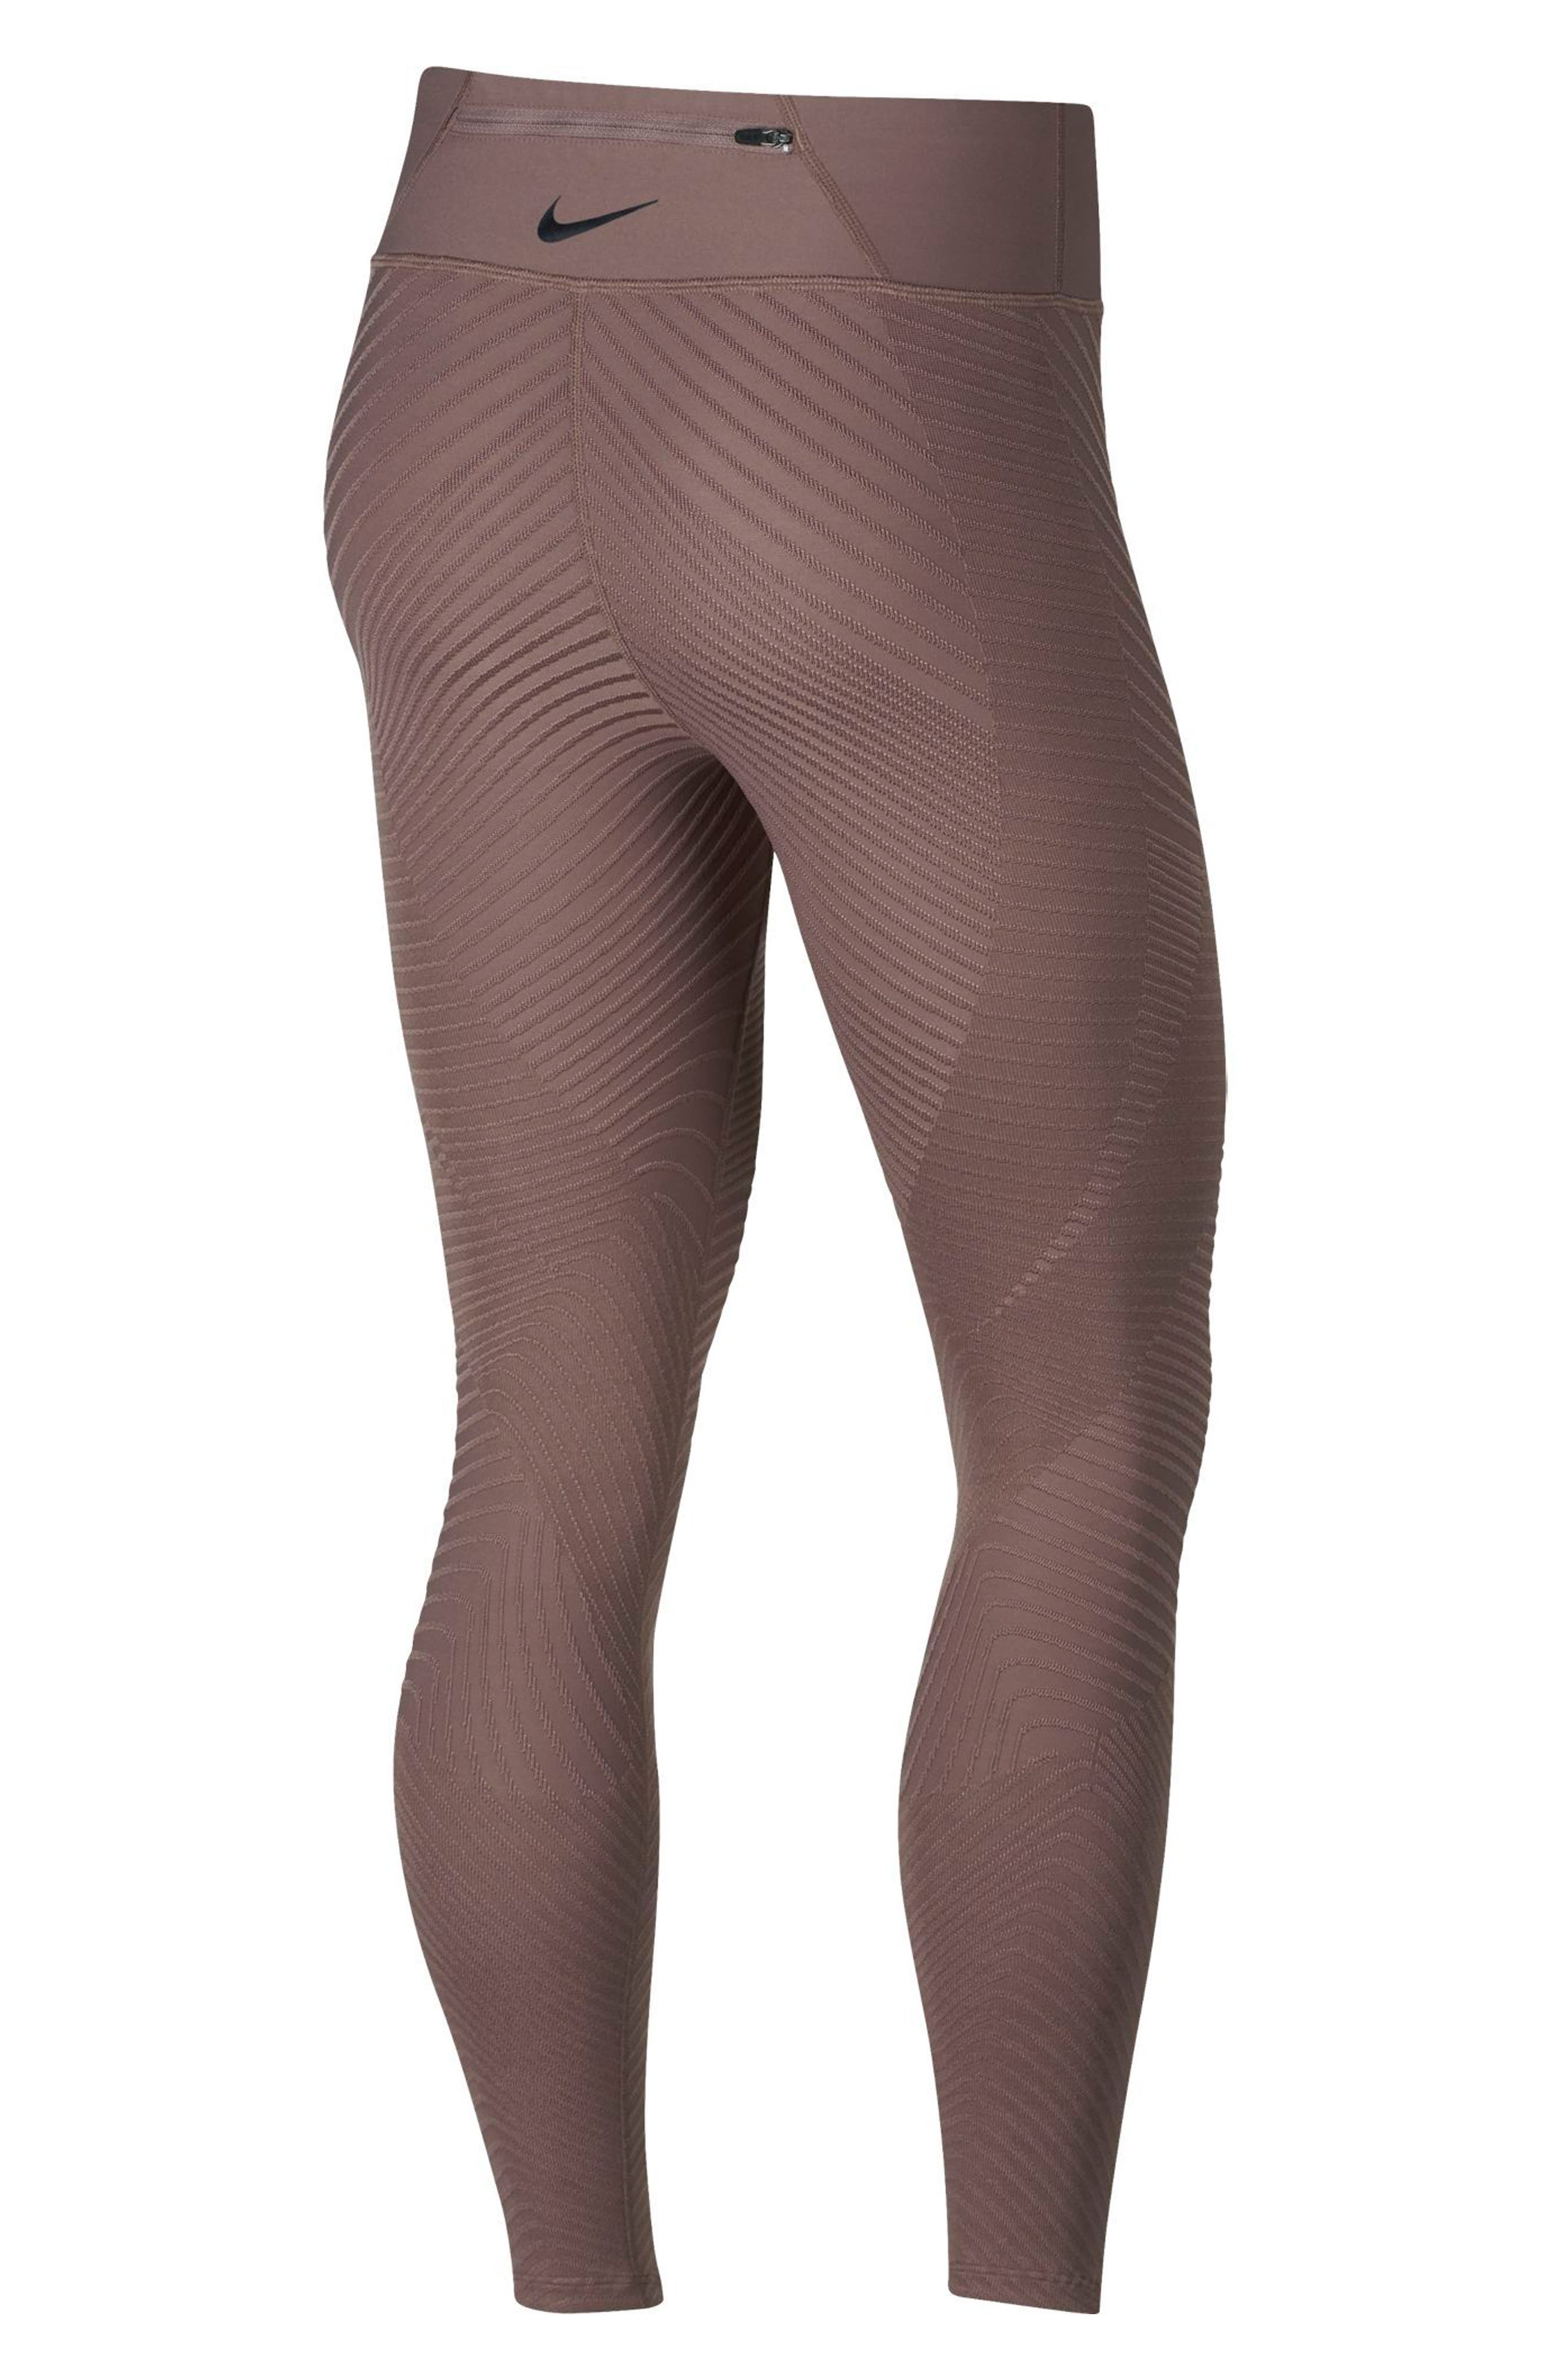 Epic Lux Running Tights,                             Alternate thumbnail 2, color,                             SMOKEY MAUVE/ SILVER